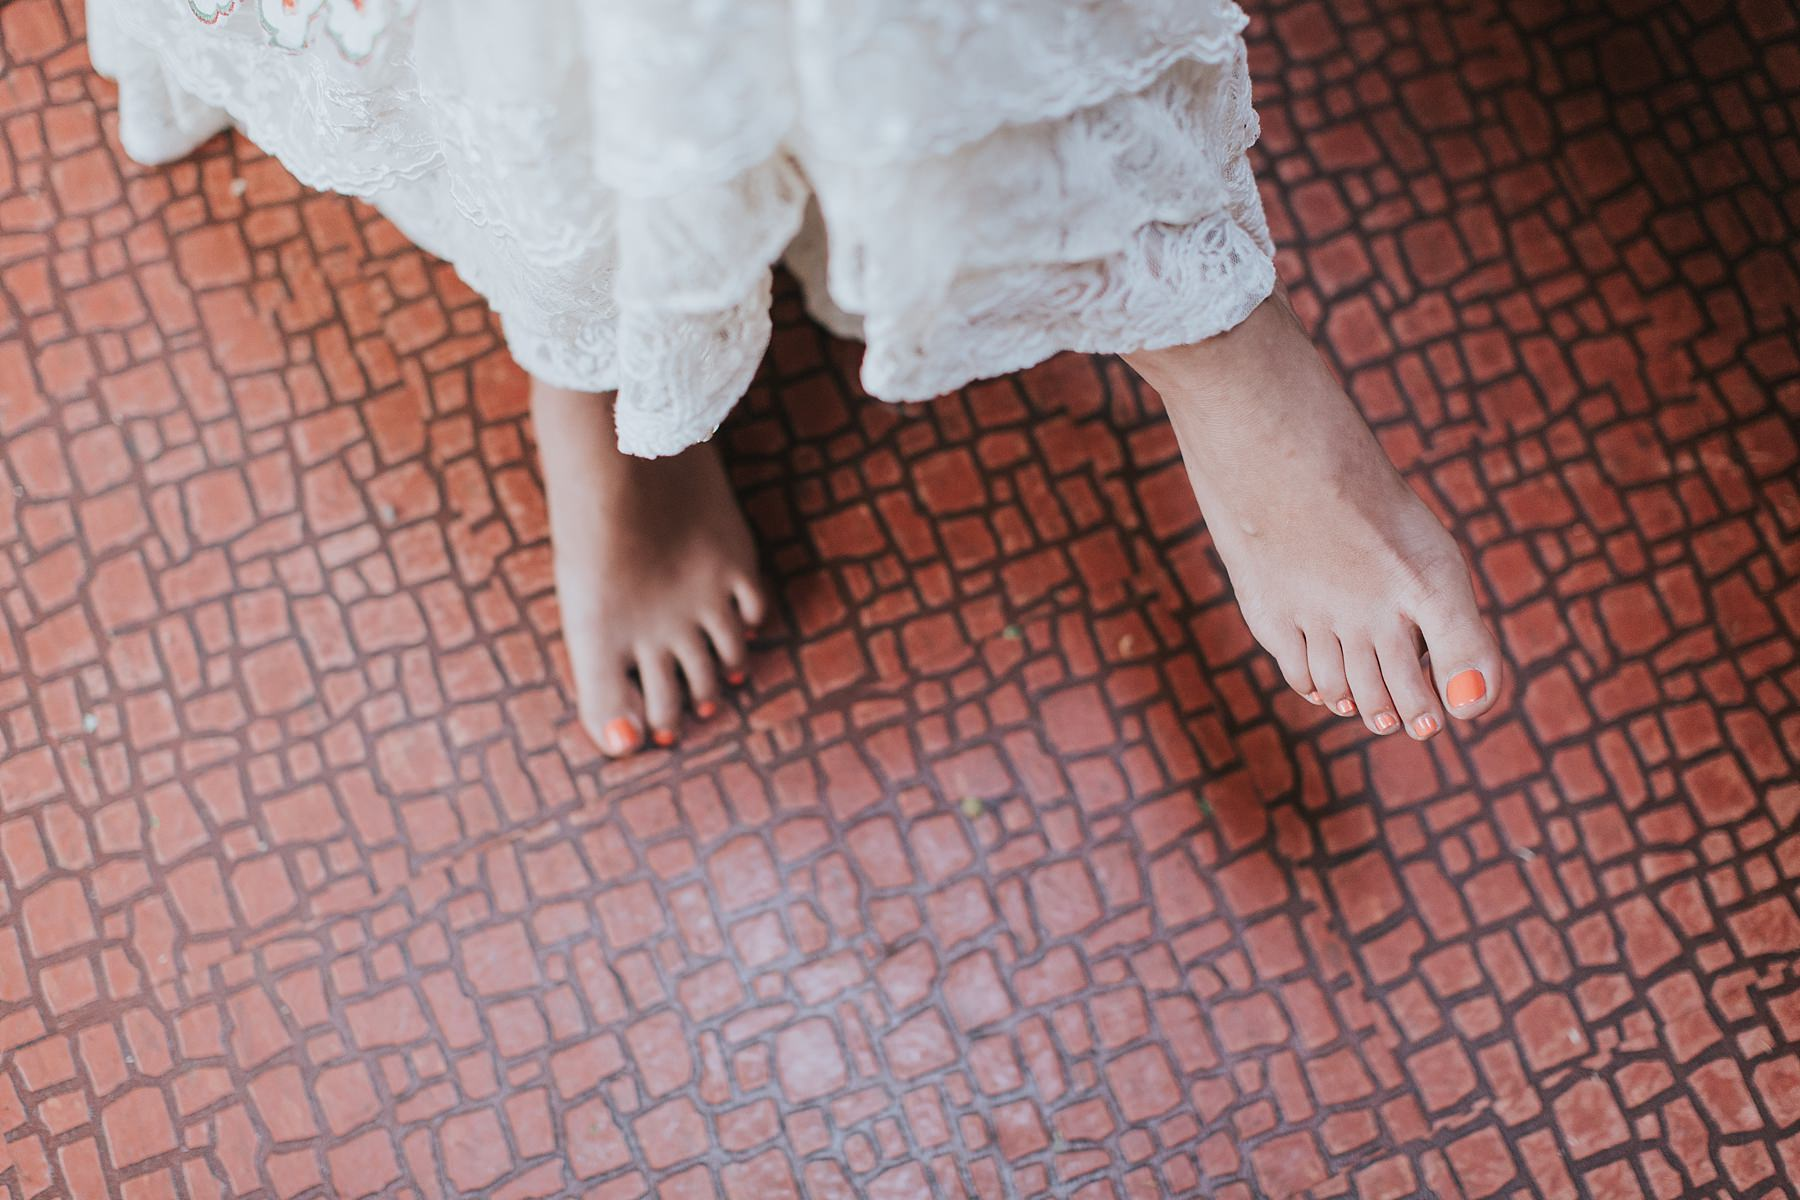 brides toepolish matches the tiles